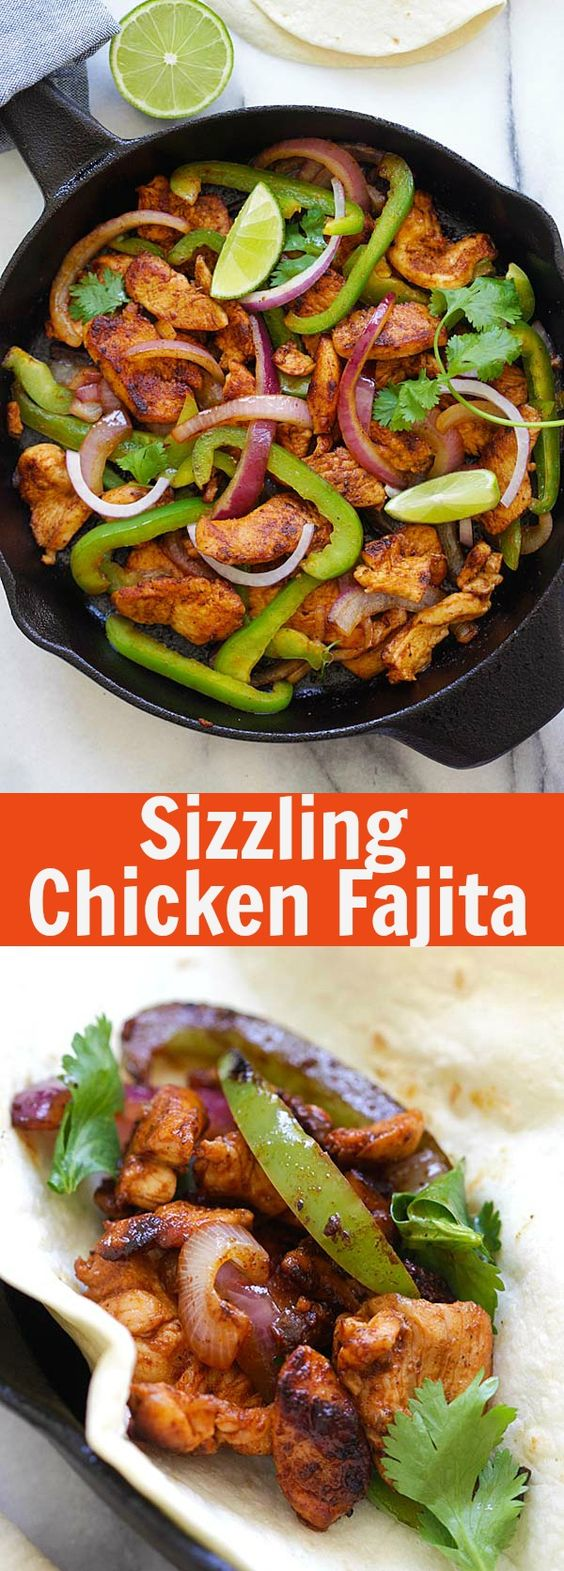 Sizzling chicken fajita best and easiest homemade chicken fajita sizzling chicken fajita best and easiest homemade chicken fajita on a skillet so flavorful and so much better than mexican restaurants rasamal forumfinder Gallery